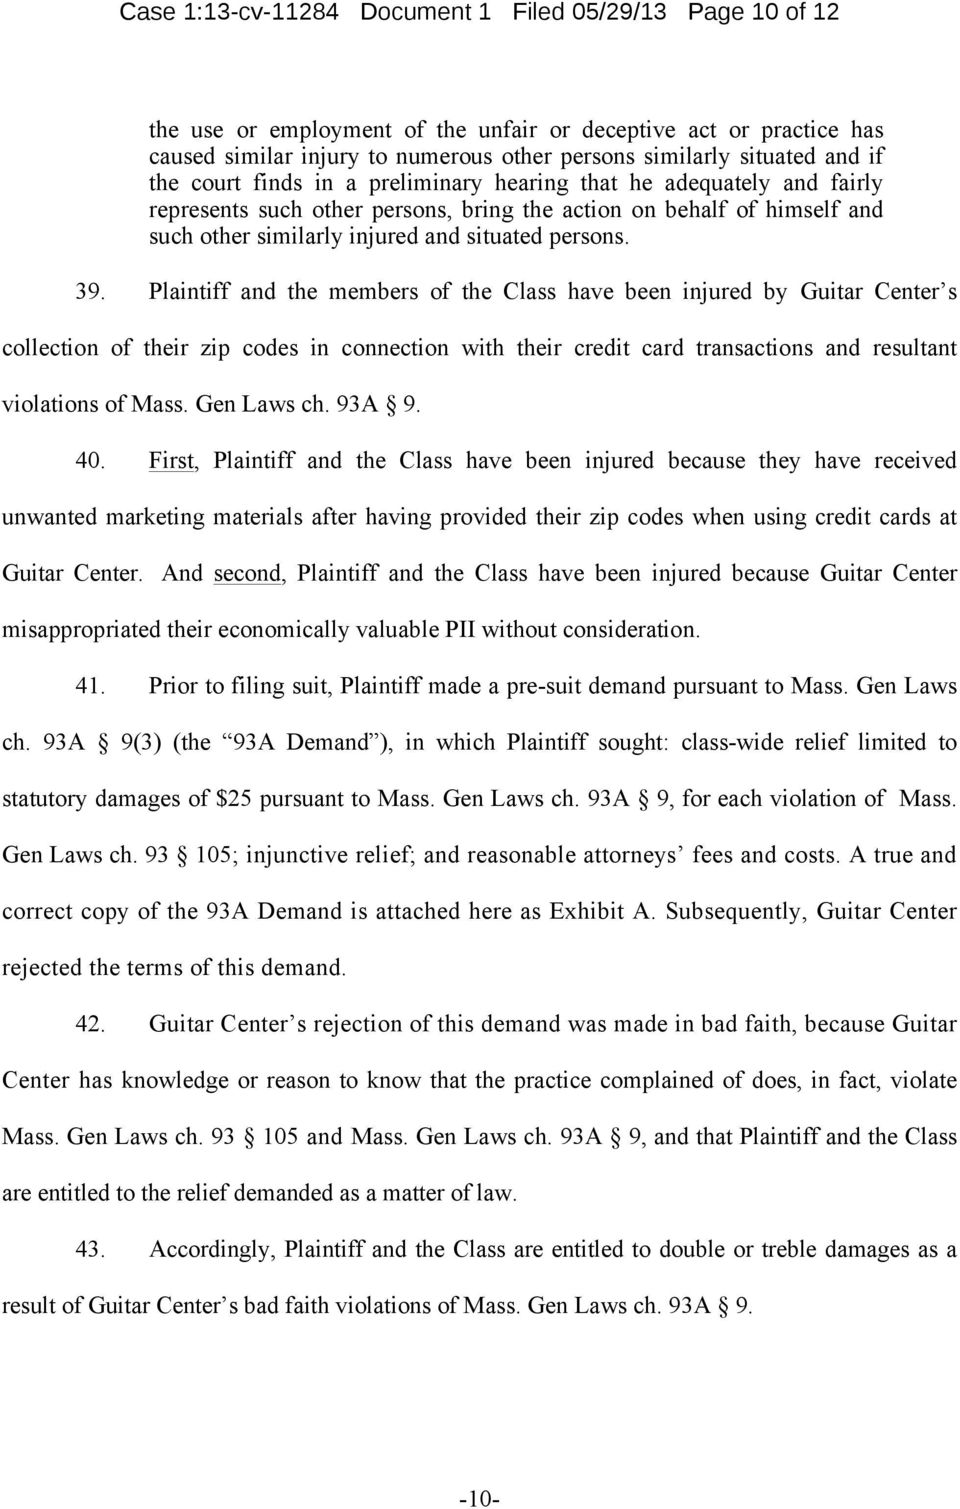 Case 1:13-cv Document 1 Filed 05/29/13 Page 1 of 12 IN THE UNITED